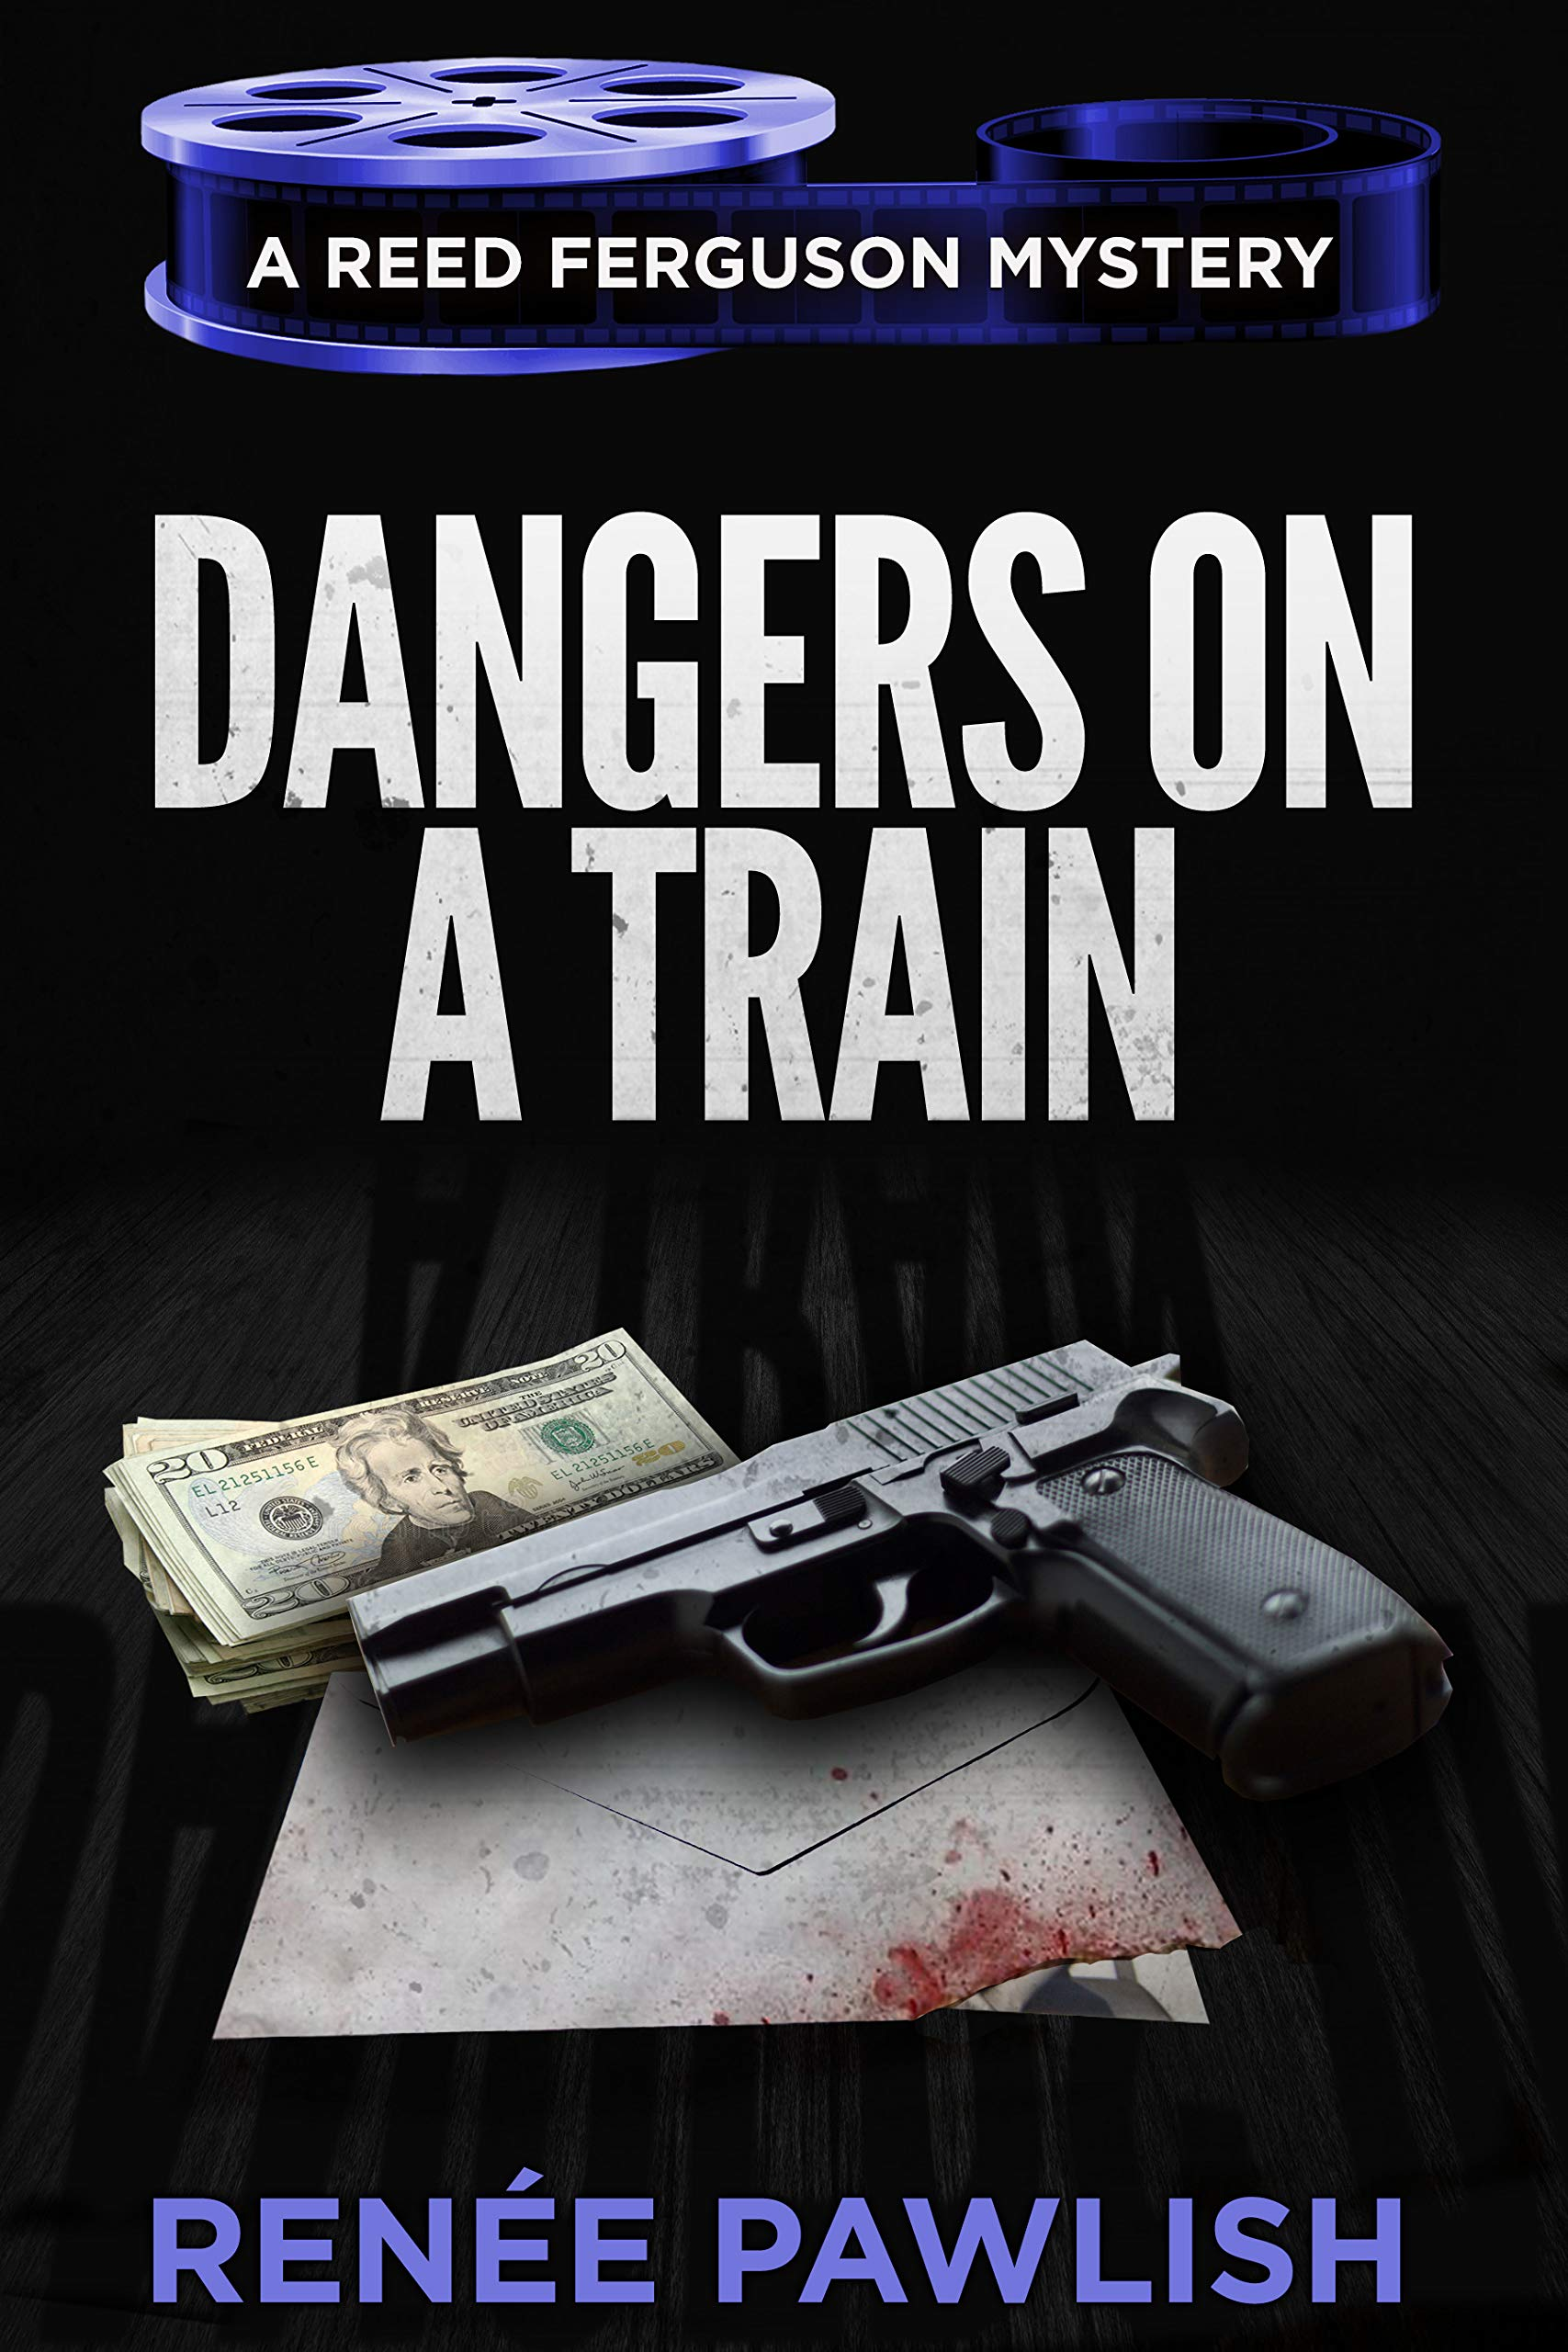 Dangers on a Train (The Reed Ferguson Mystery Series Book 20)